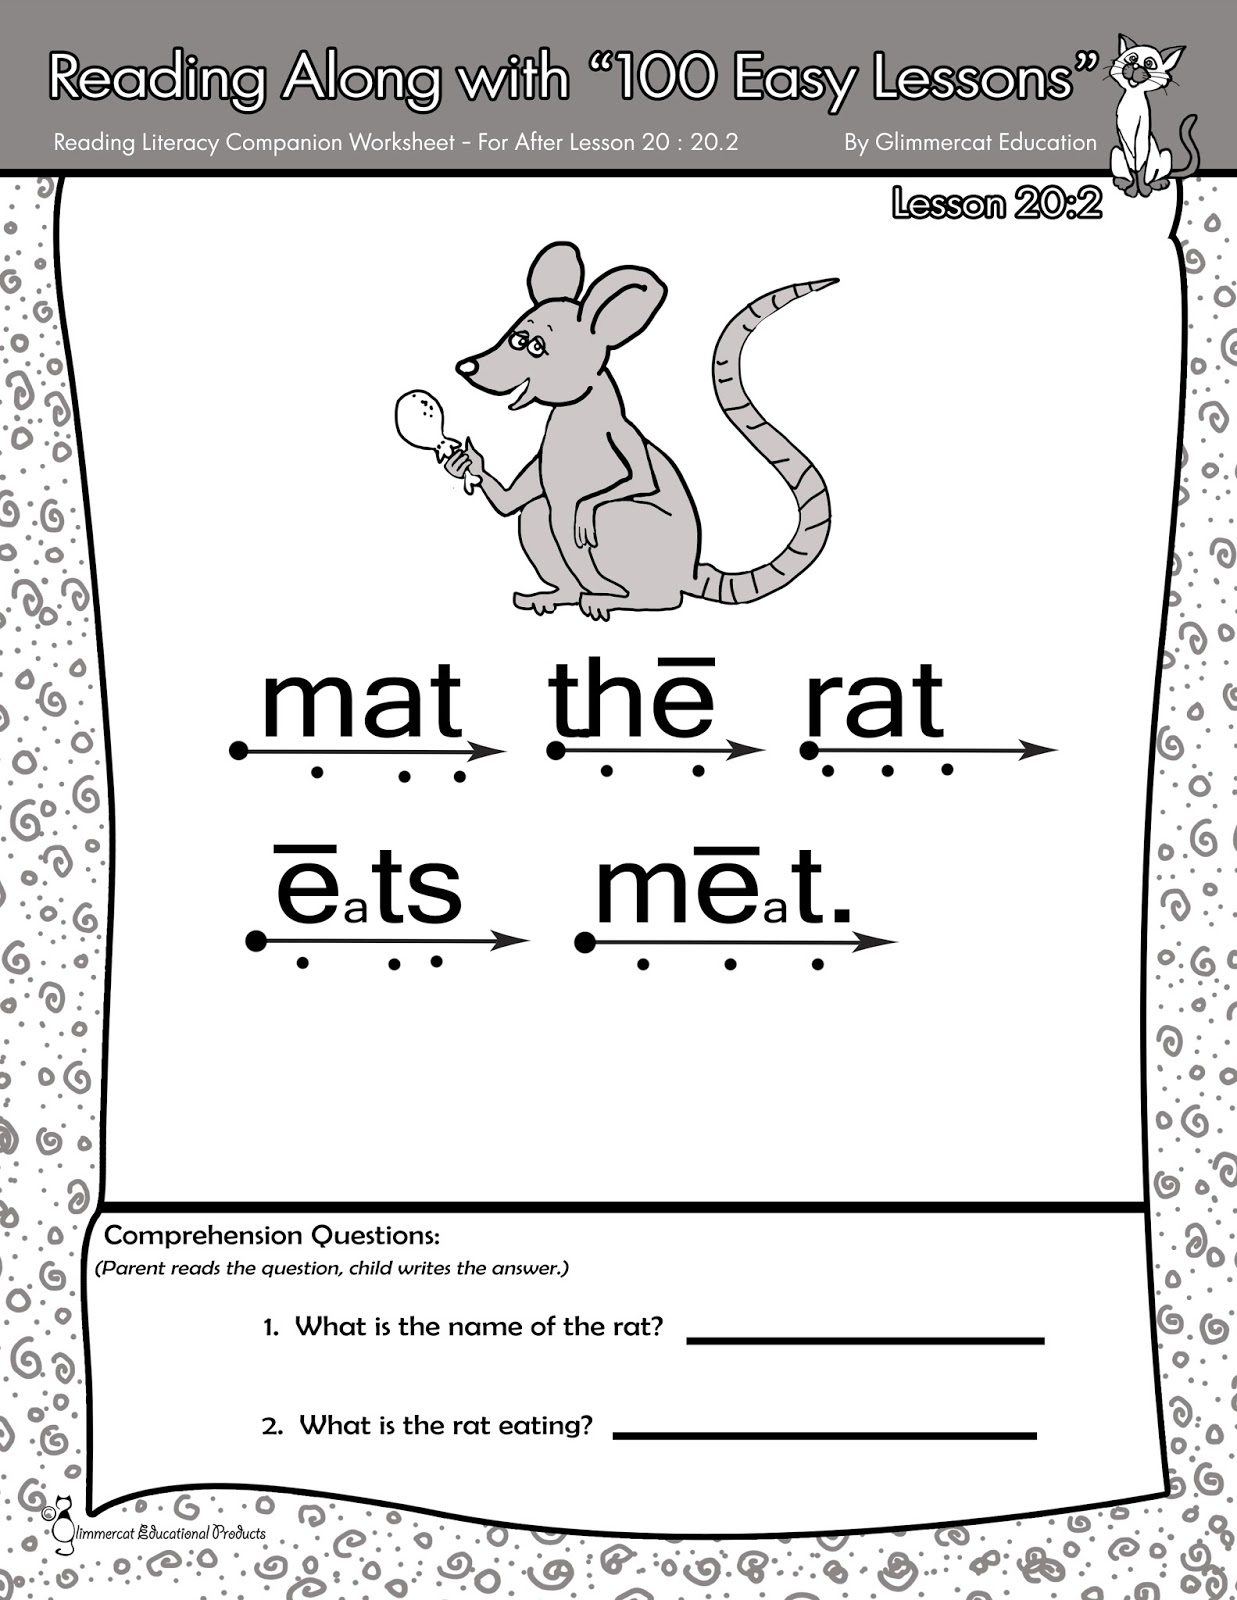 If You Re Not Exactly Sure What Looking At There That Is A Mat The Rat Craft From One Of My Freebie Reading Stories This Here In Fact